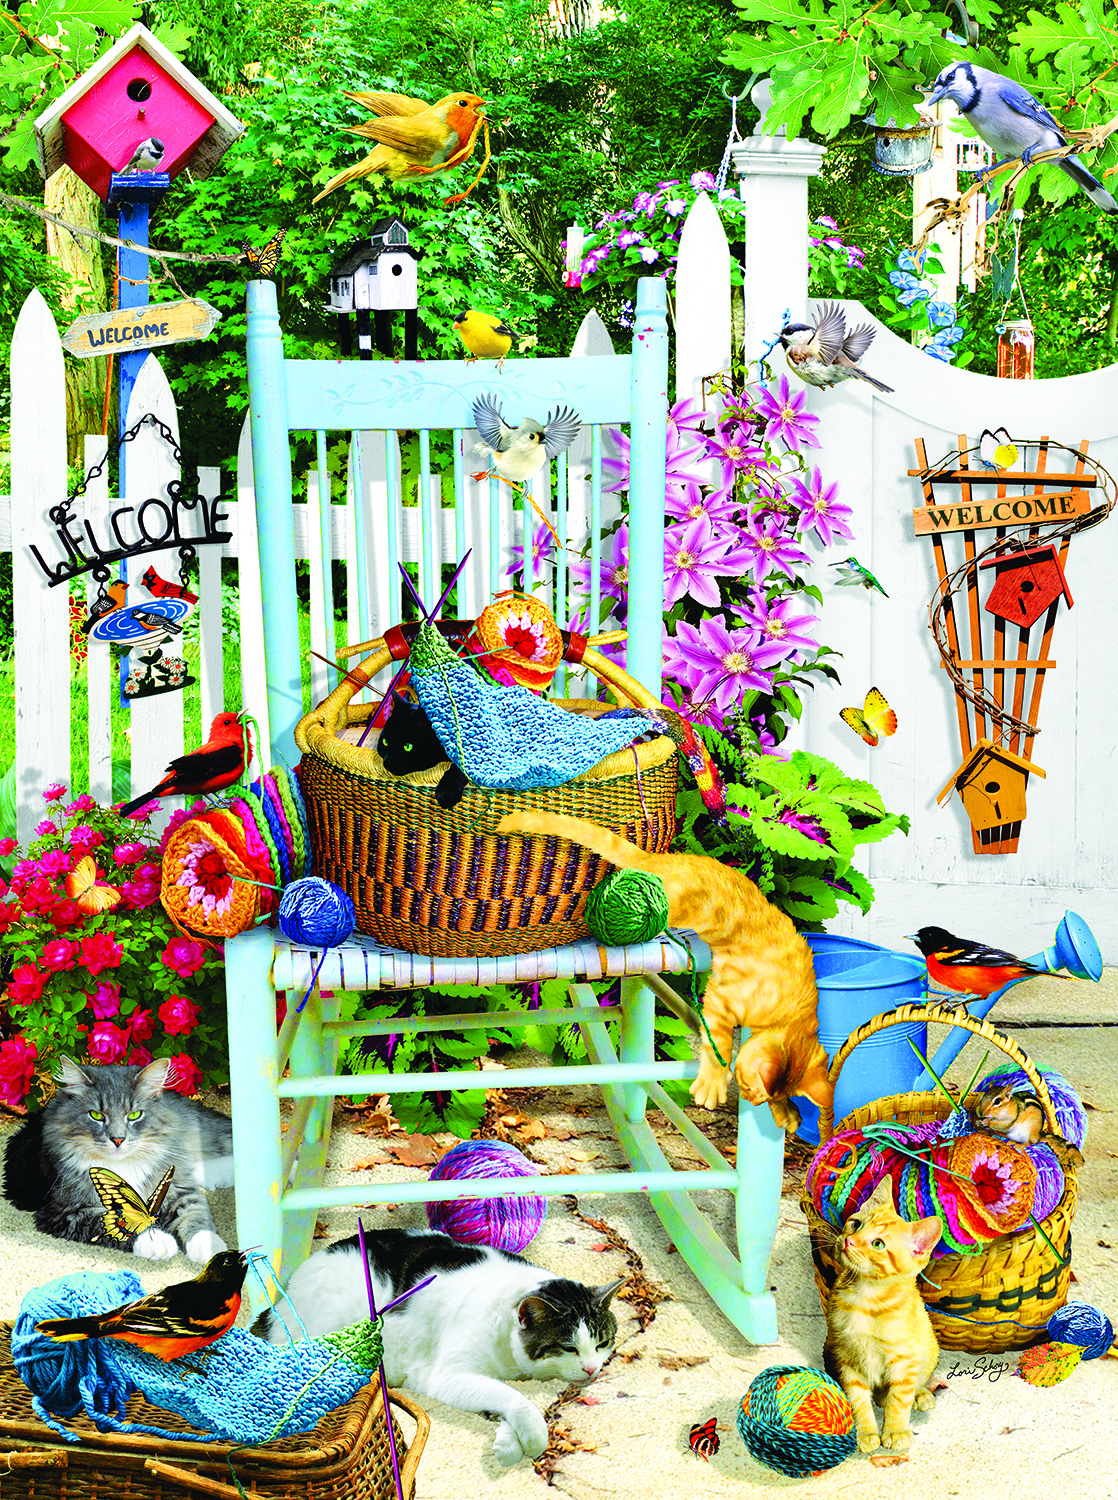 The Knitting Chair 1000 Pc Jigsaw Puzzle by SunsOut Inc.